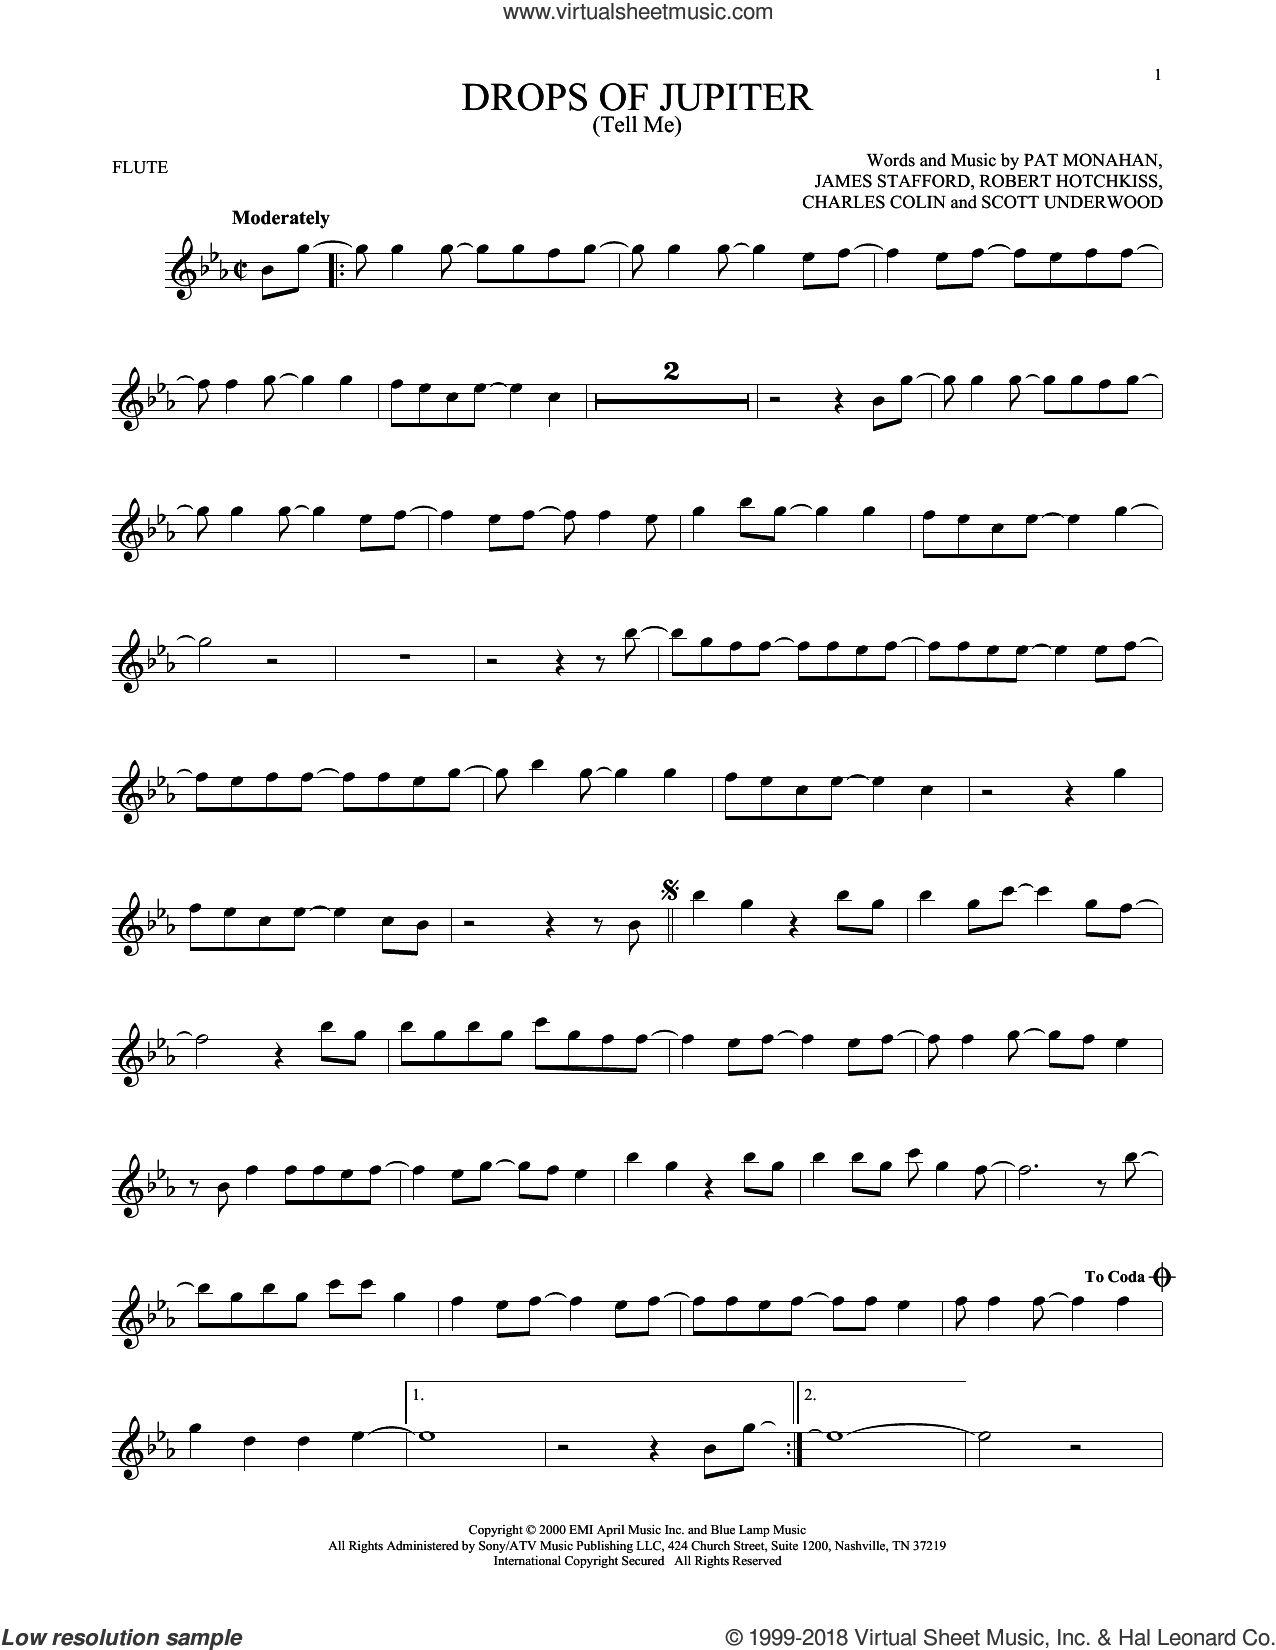 Drops Of Jupiter (Tell Me) sheet music for flute solo by Scott Underwood, Train and Pat Monahan. Score Image Preview.